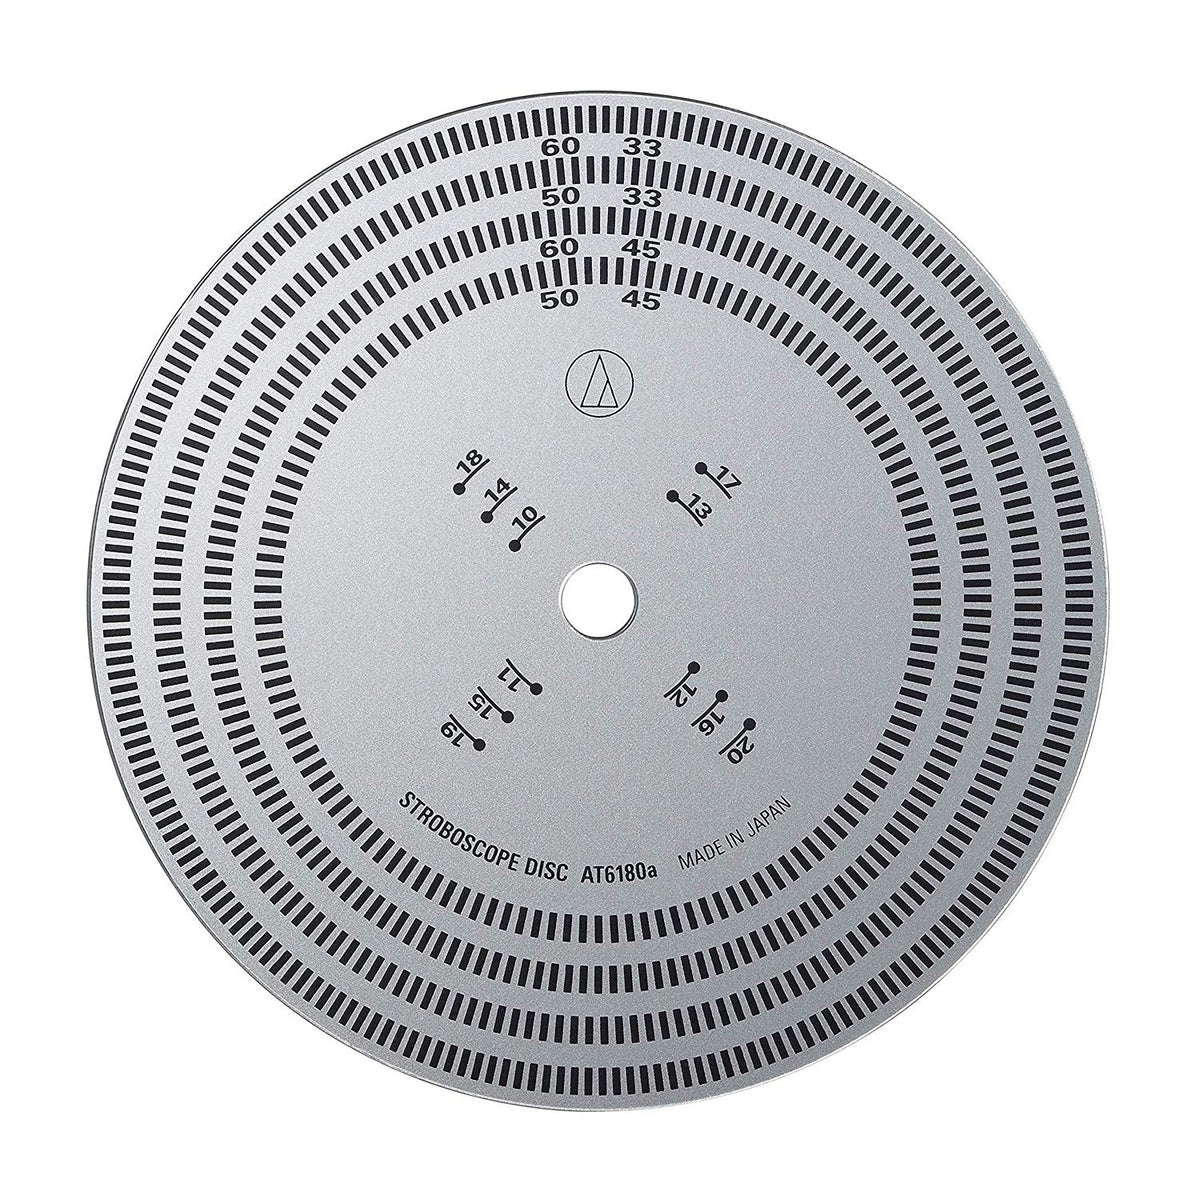 Audio-Technica: AT6180a Stroboscopic Disc for Turntable Speed Check